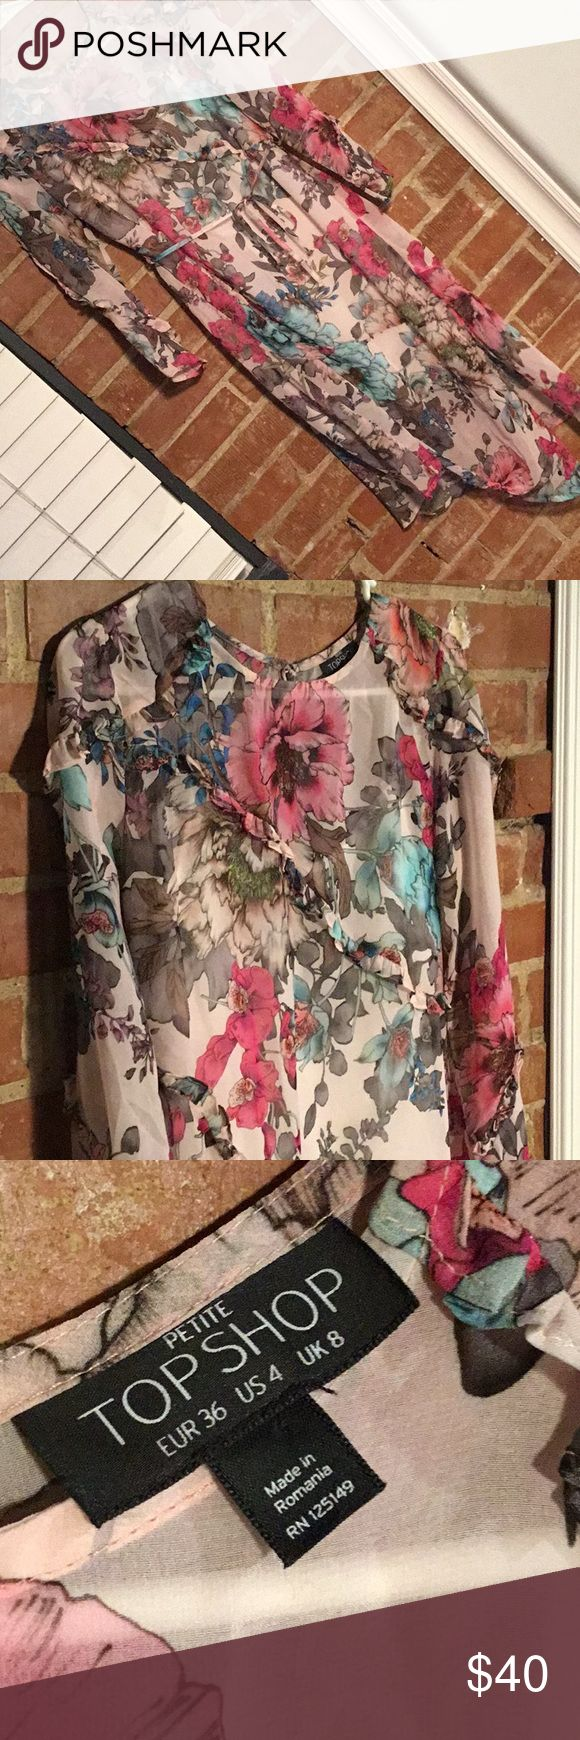 Topshop Floral Midi Dress New without tags Sold out online and the first dress on Refinery29's 27 Floral Dresses That are Actually Kind-of Groundbreaking articles!   Size 4 petite  Open to offers Thanks for sharing!!  😊🤗 Topshop Dresses Midi